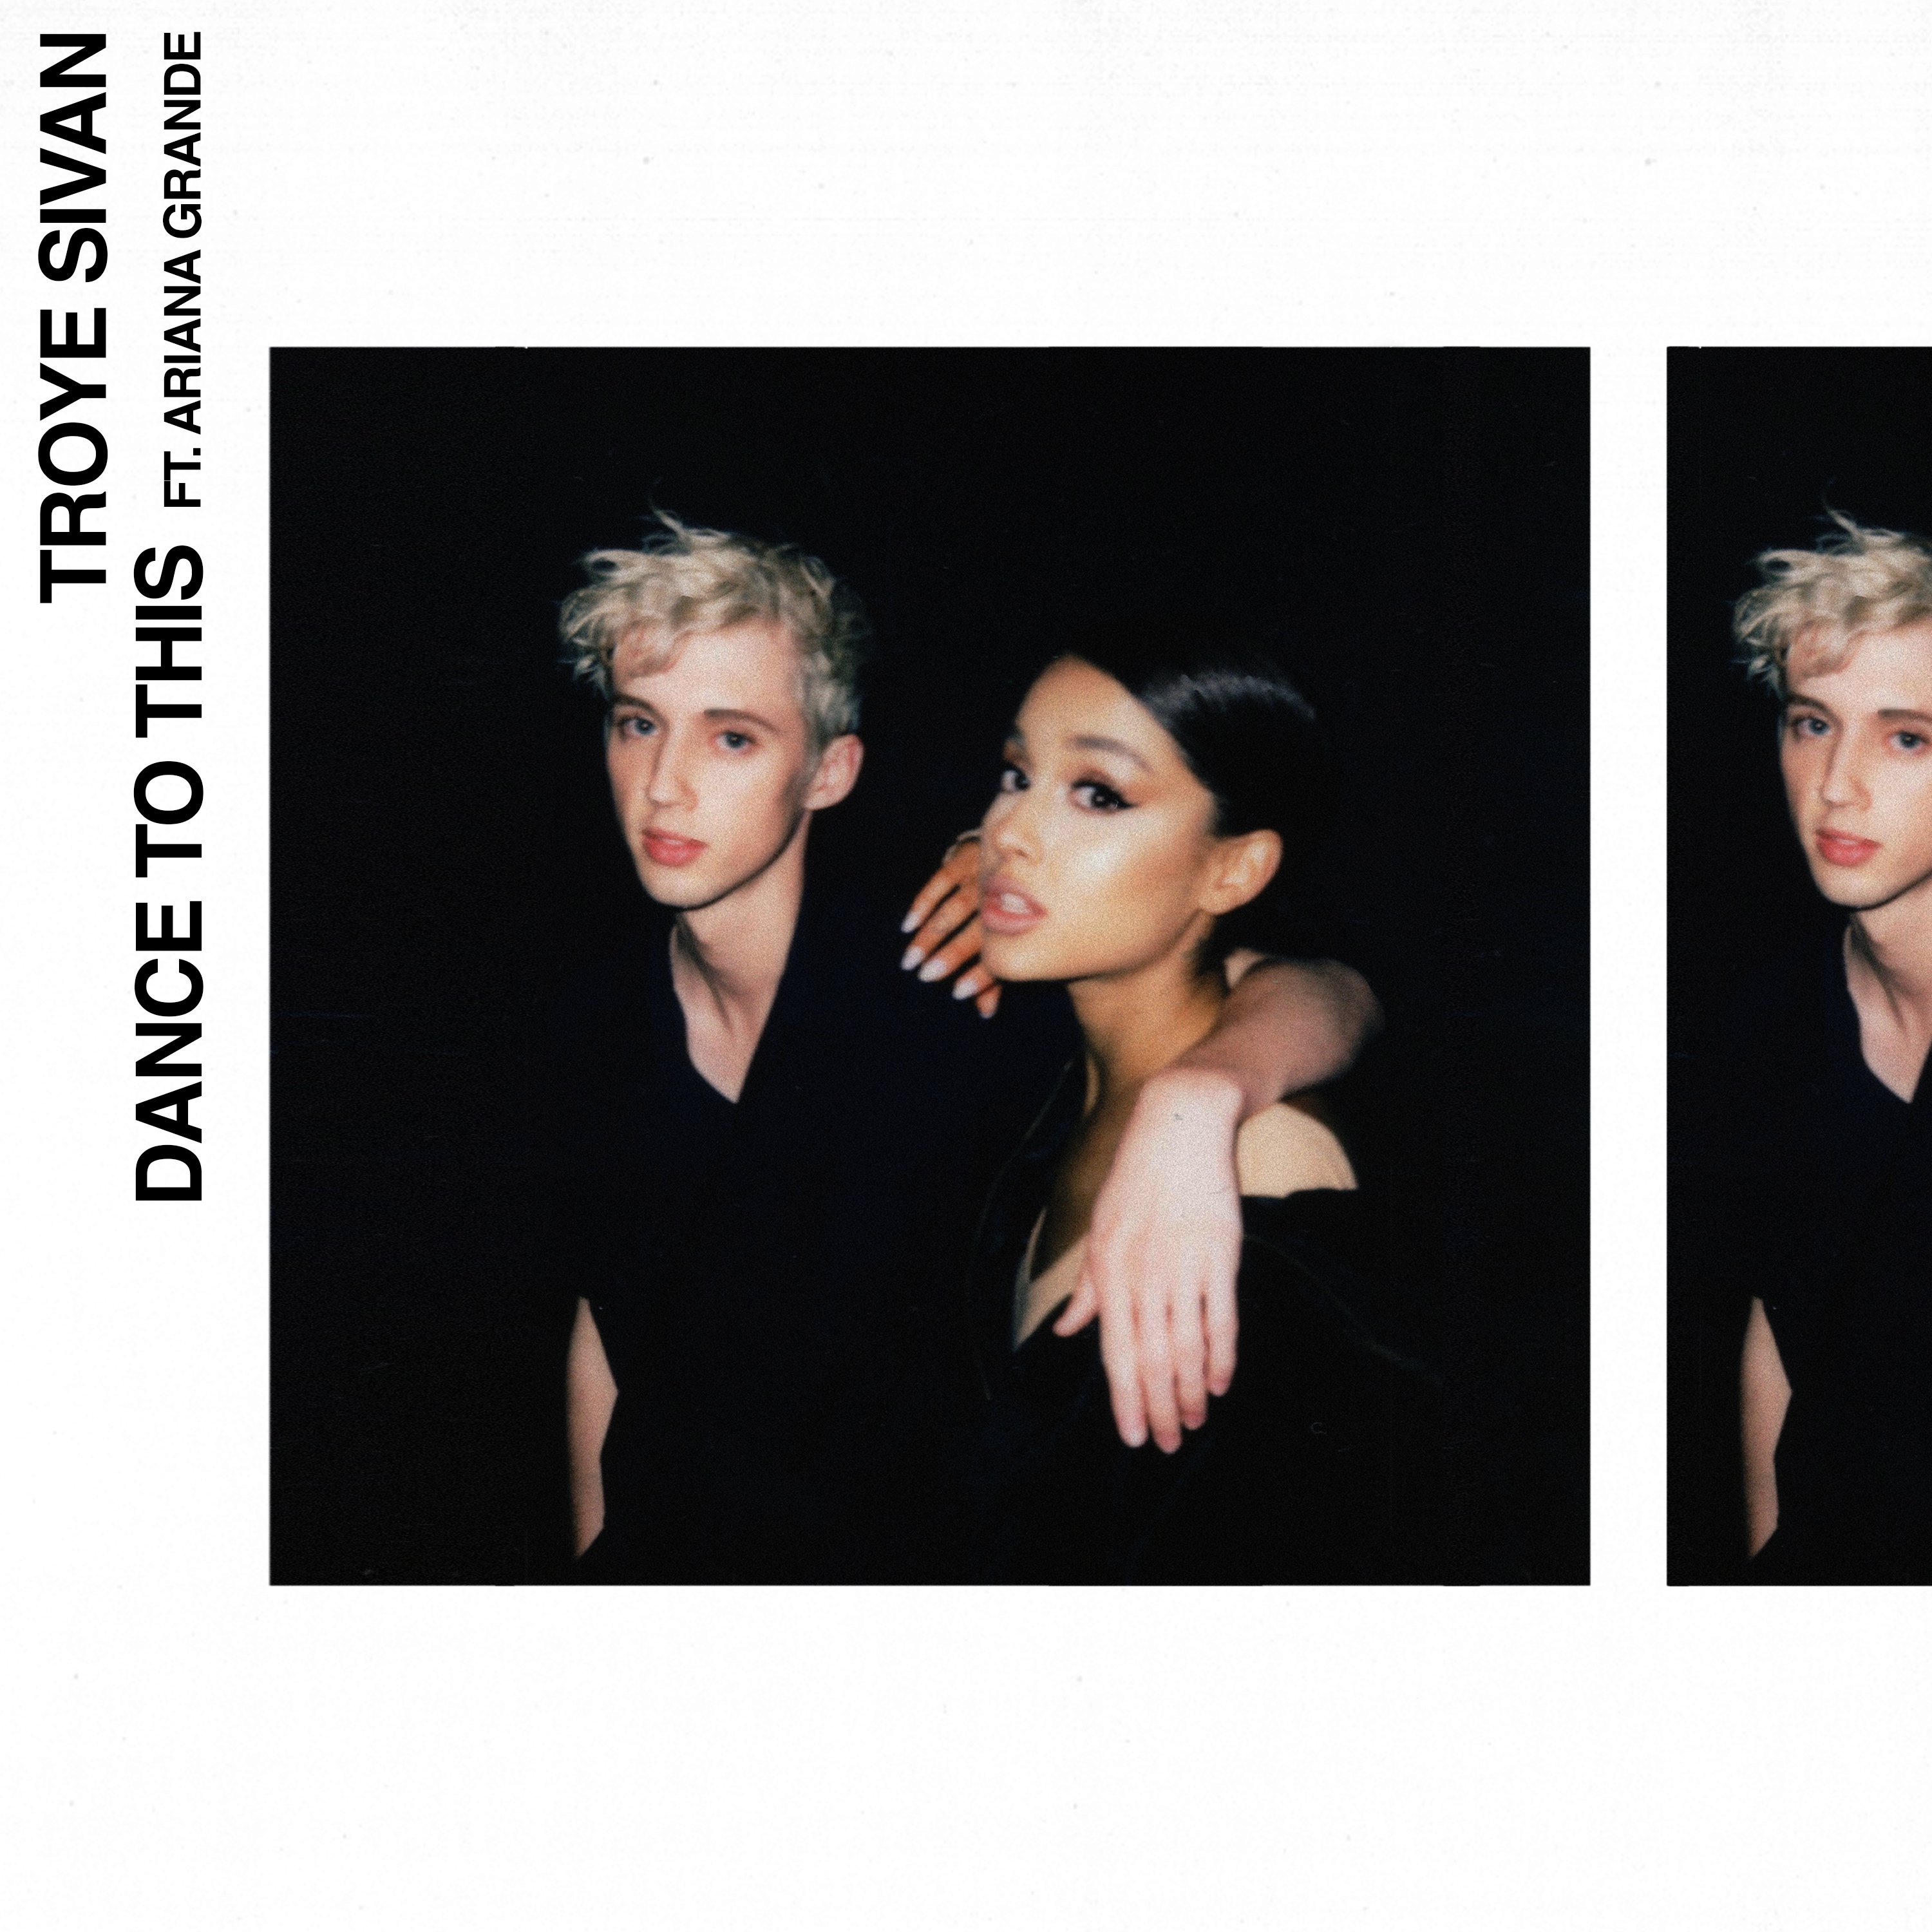 Dance To This Troye Sivan Ariana Grande Artwork